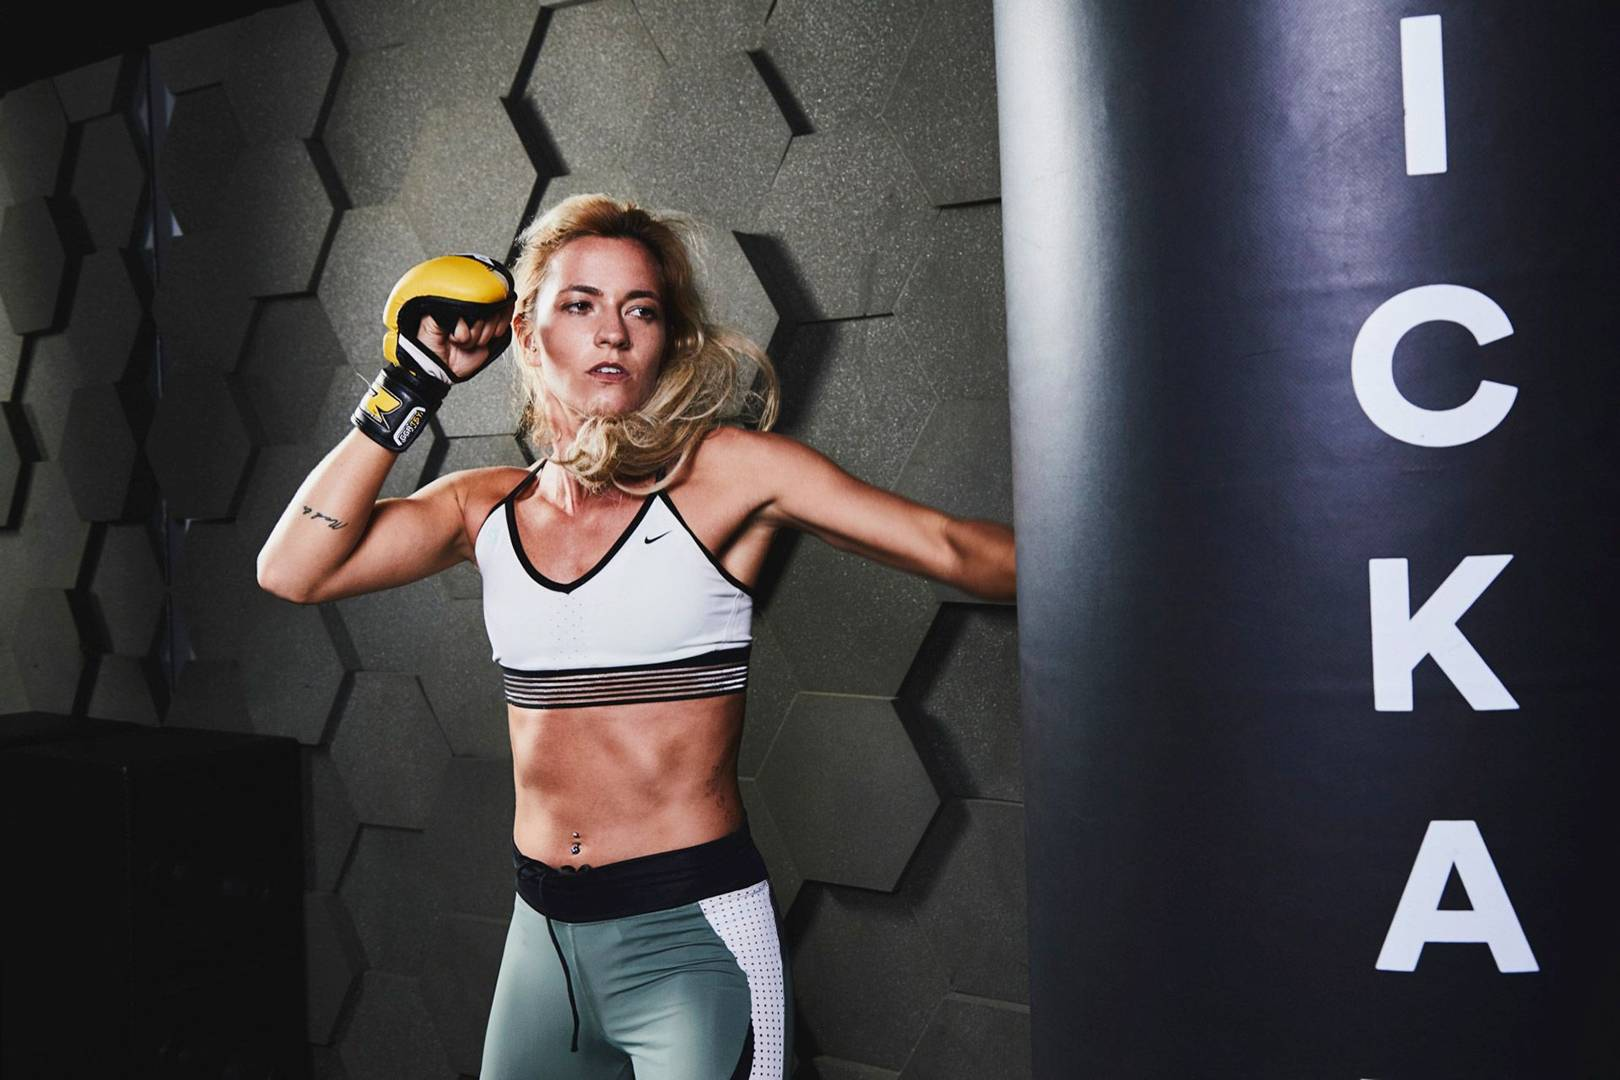 Best Fitness Classes 2017 Glamour Uk At Circuit Works We Offer The Personalized Training Experience In A